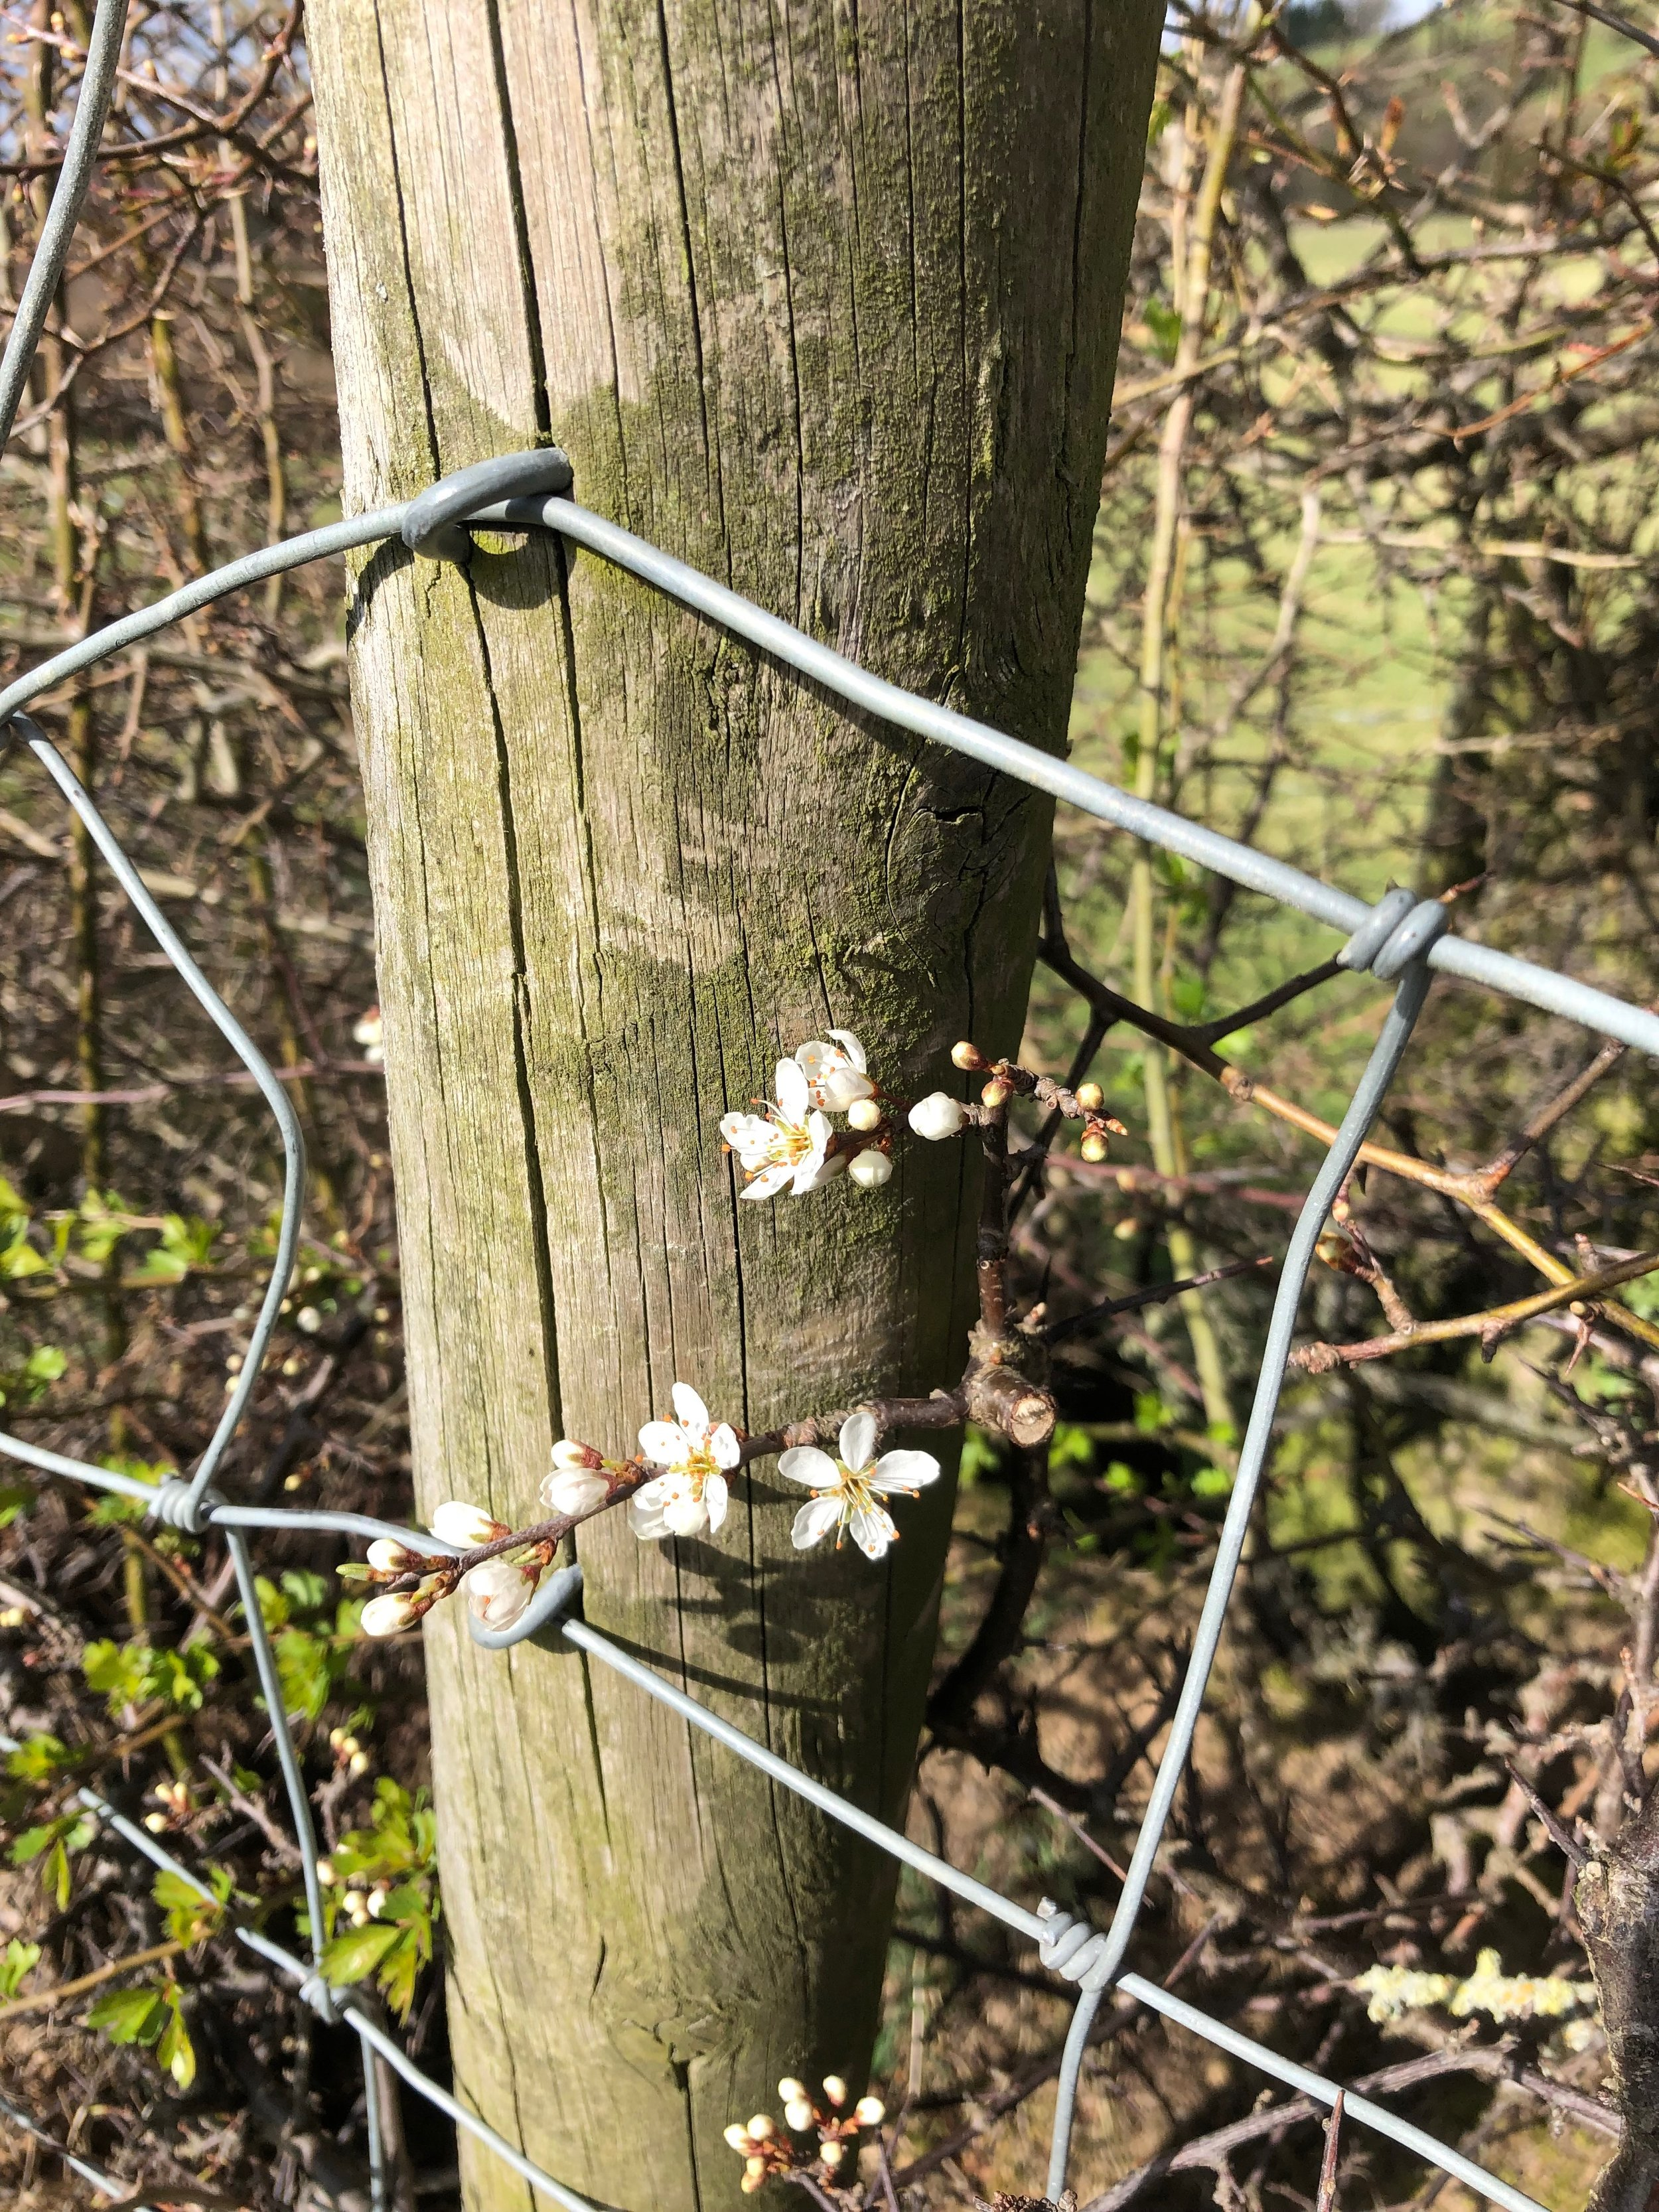 found this gorgeous blossom. we spent about half an hour taking pictures, it was sheltered from the wind and nice and warm.